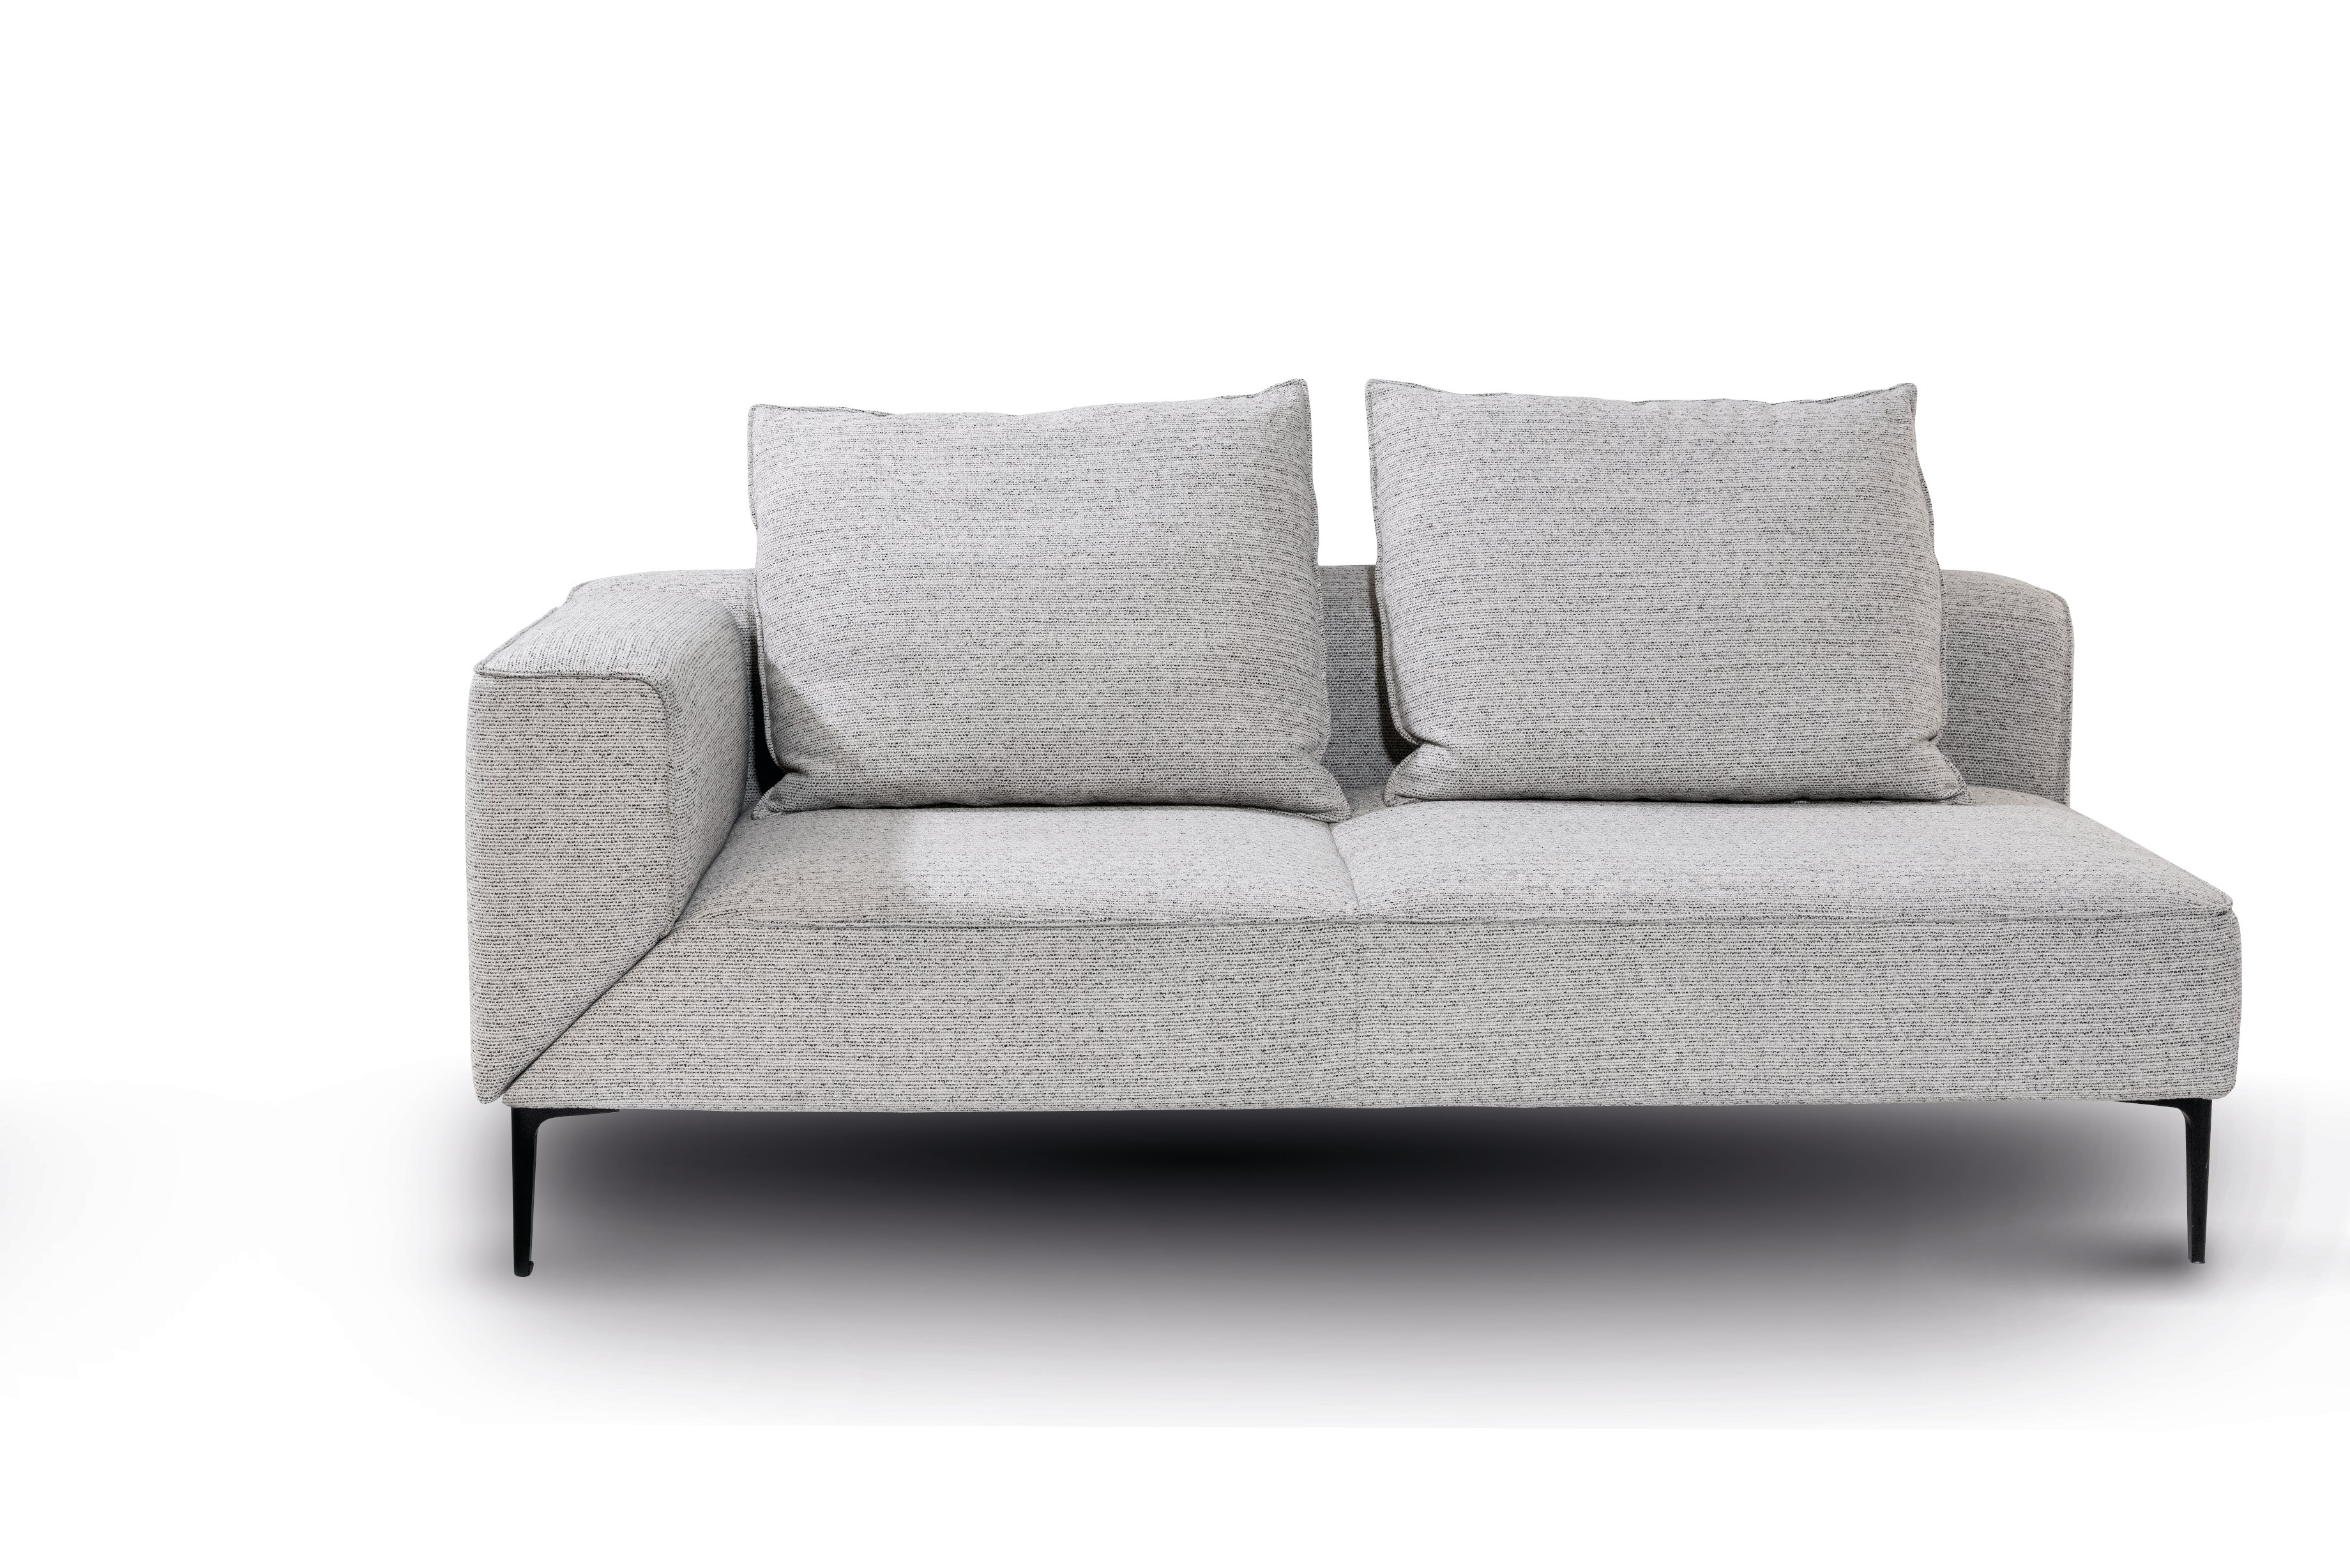 Die Armlehne des Sofa-Elements..